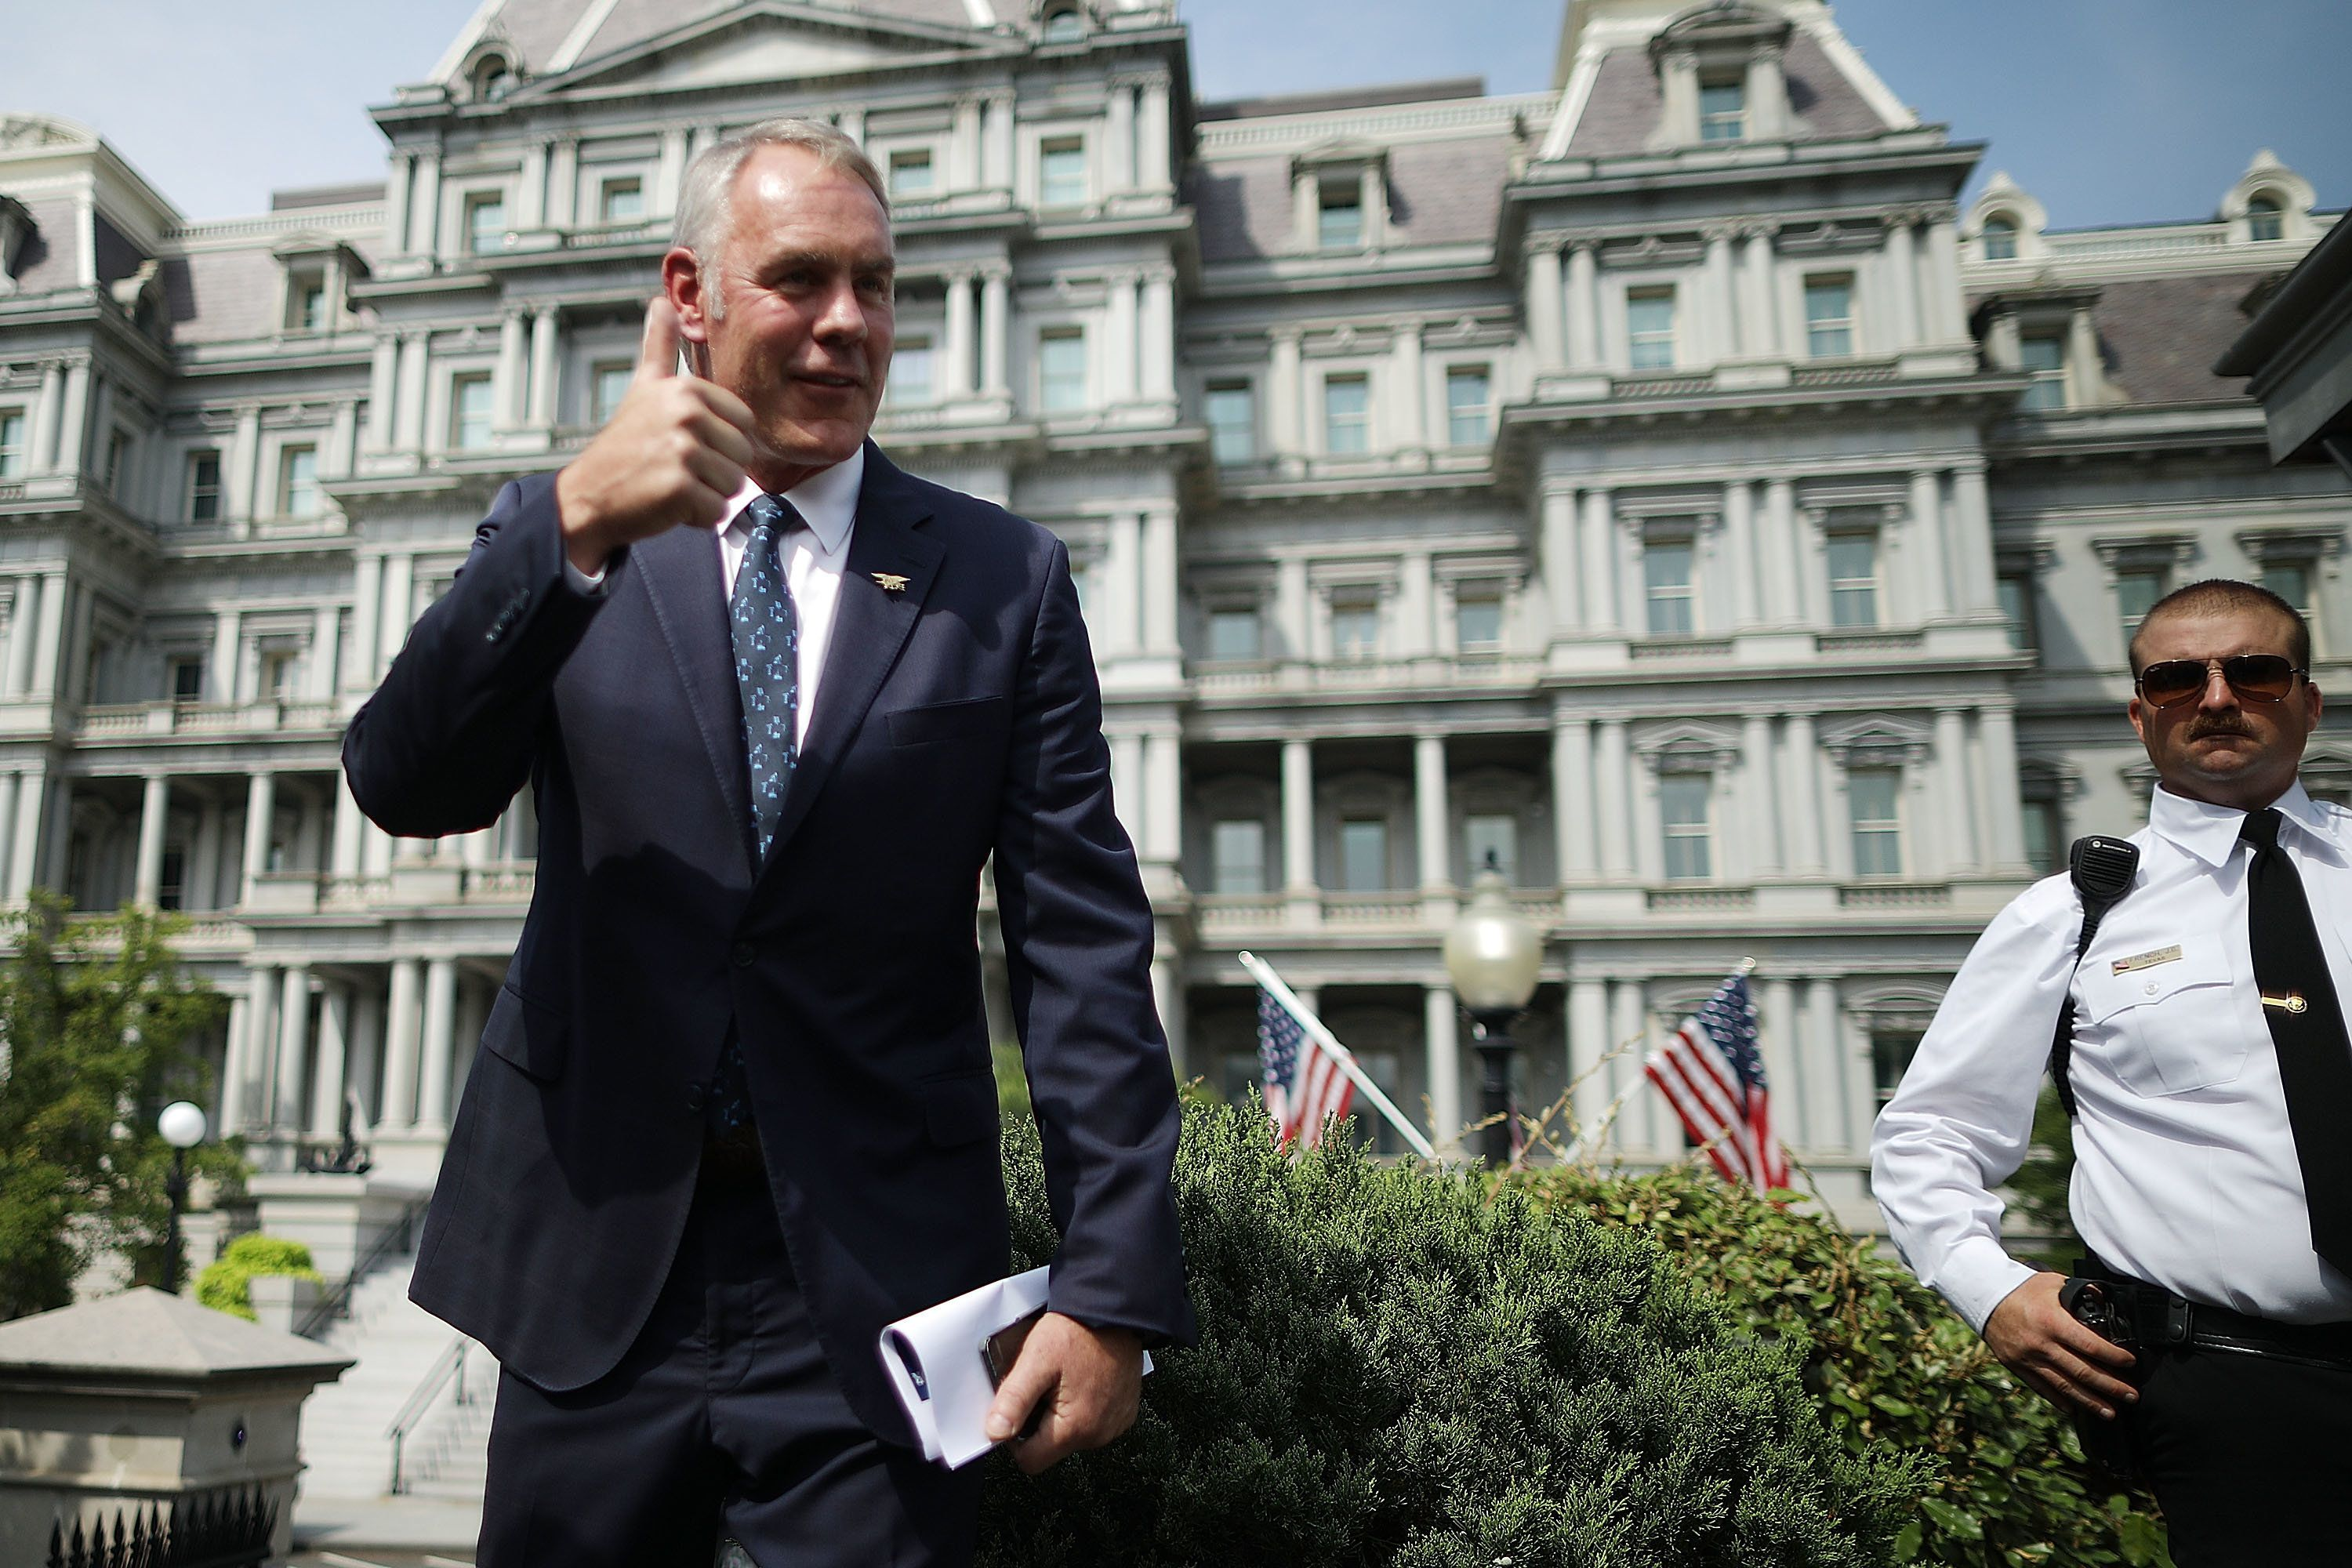 Interior Secretary Ryan Zinke acknowledges role of climate change in wildfires